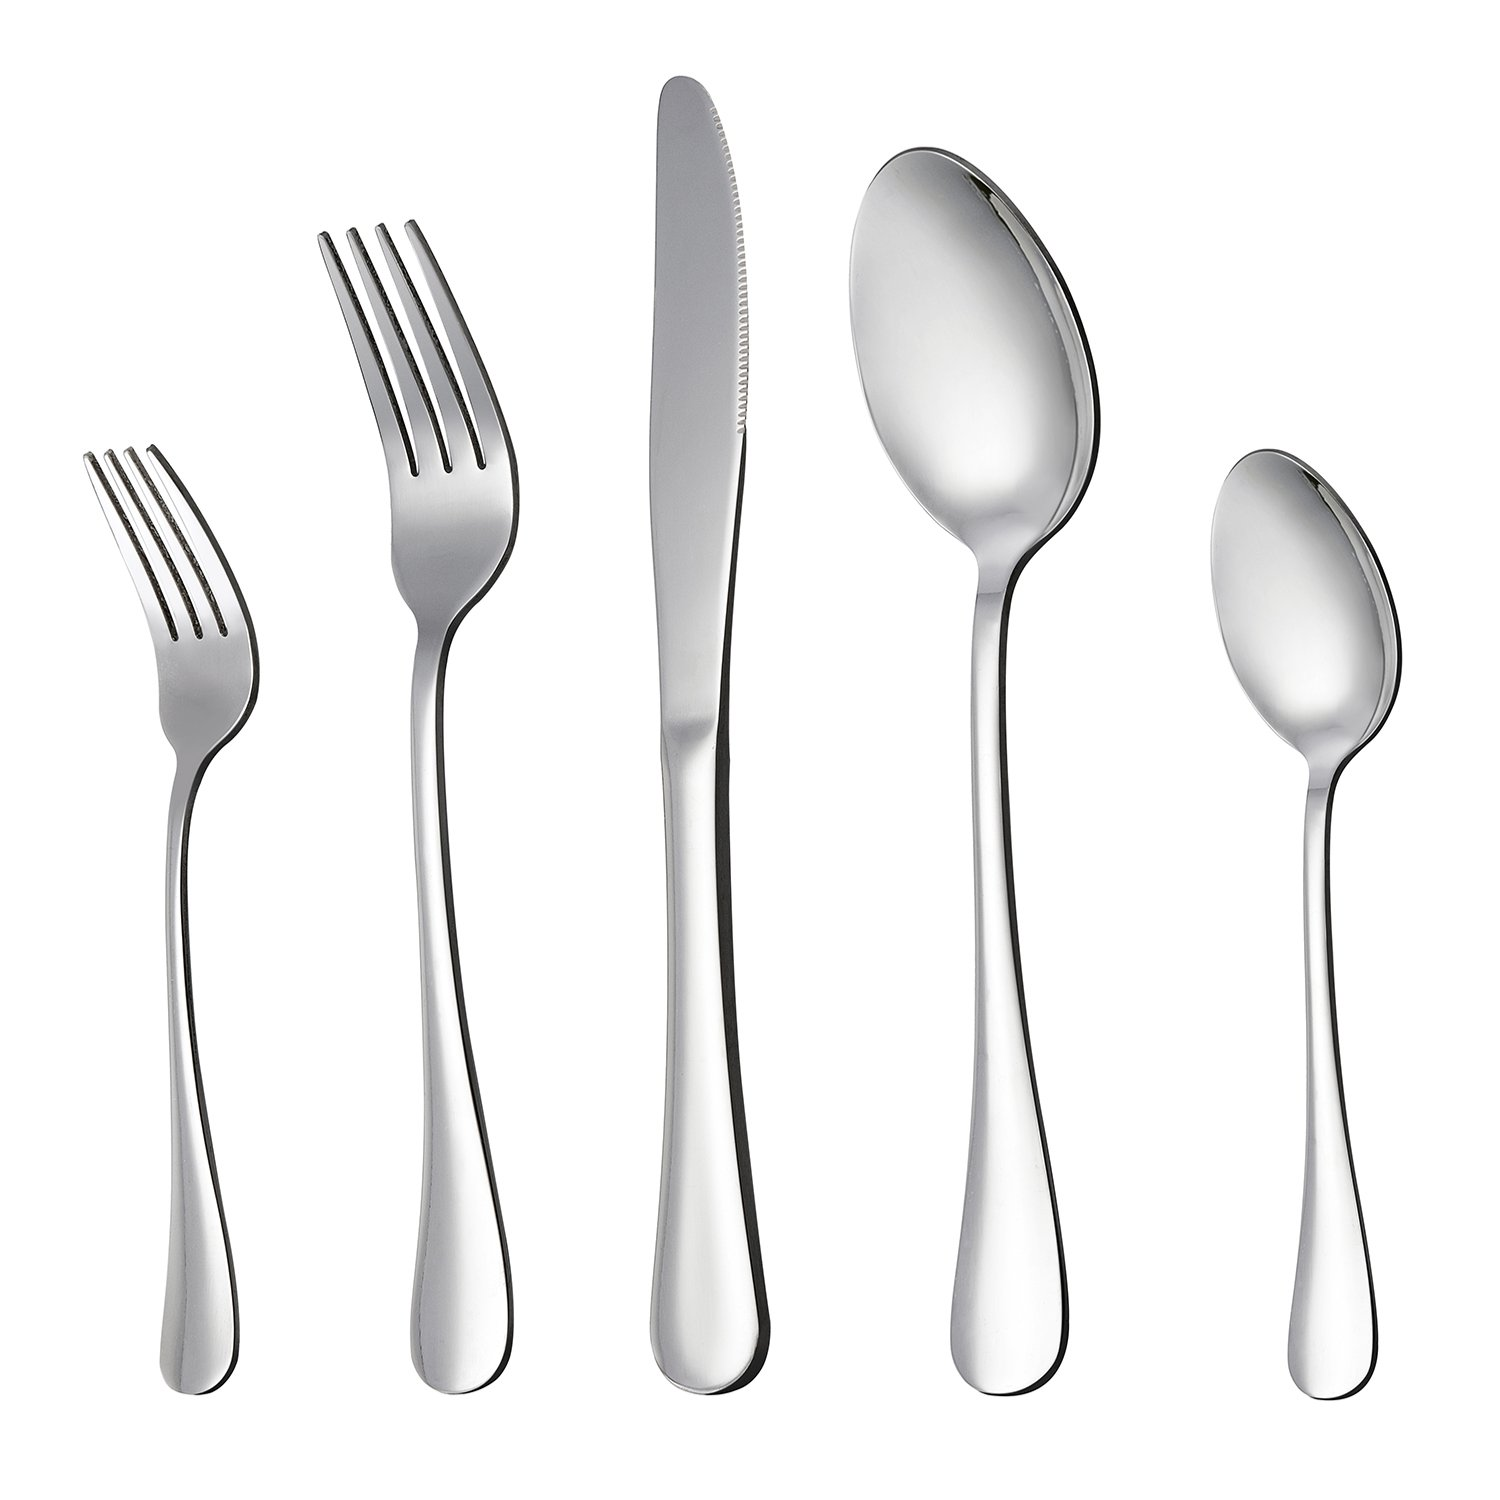 LIANYU 20-Piece Silverware Flatware Cutlery Set, Stainless Steel Utensils Service for 4, Include Knife/Fork/Spoon, Mirror Polished